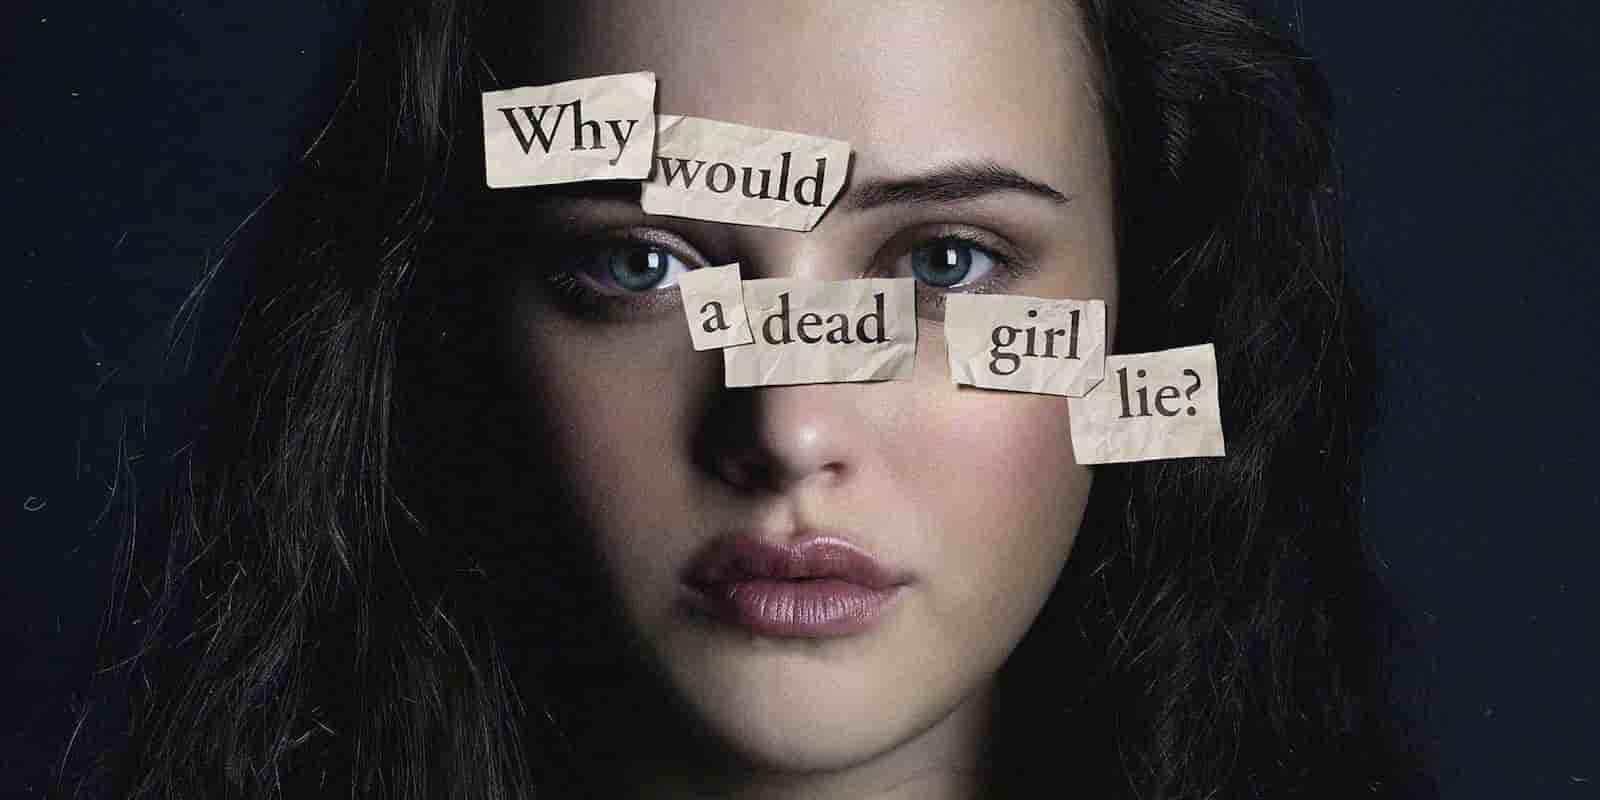 Best Screenwriting Website - Script Writers - 13 Reasons Why